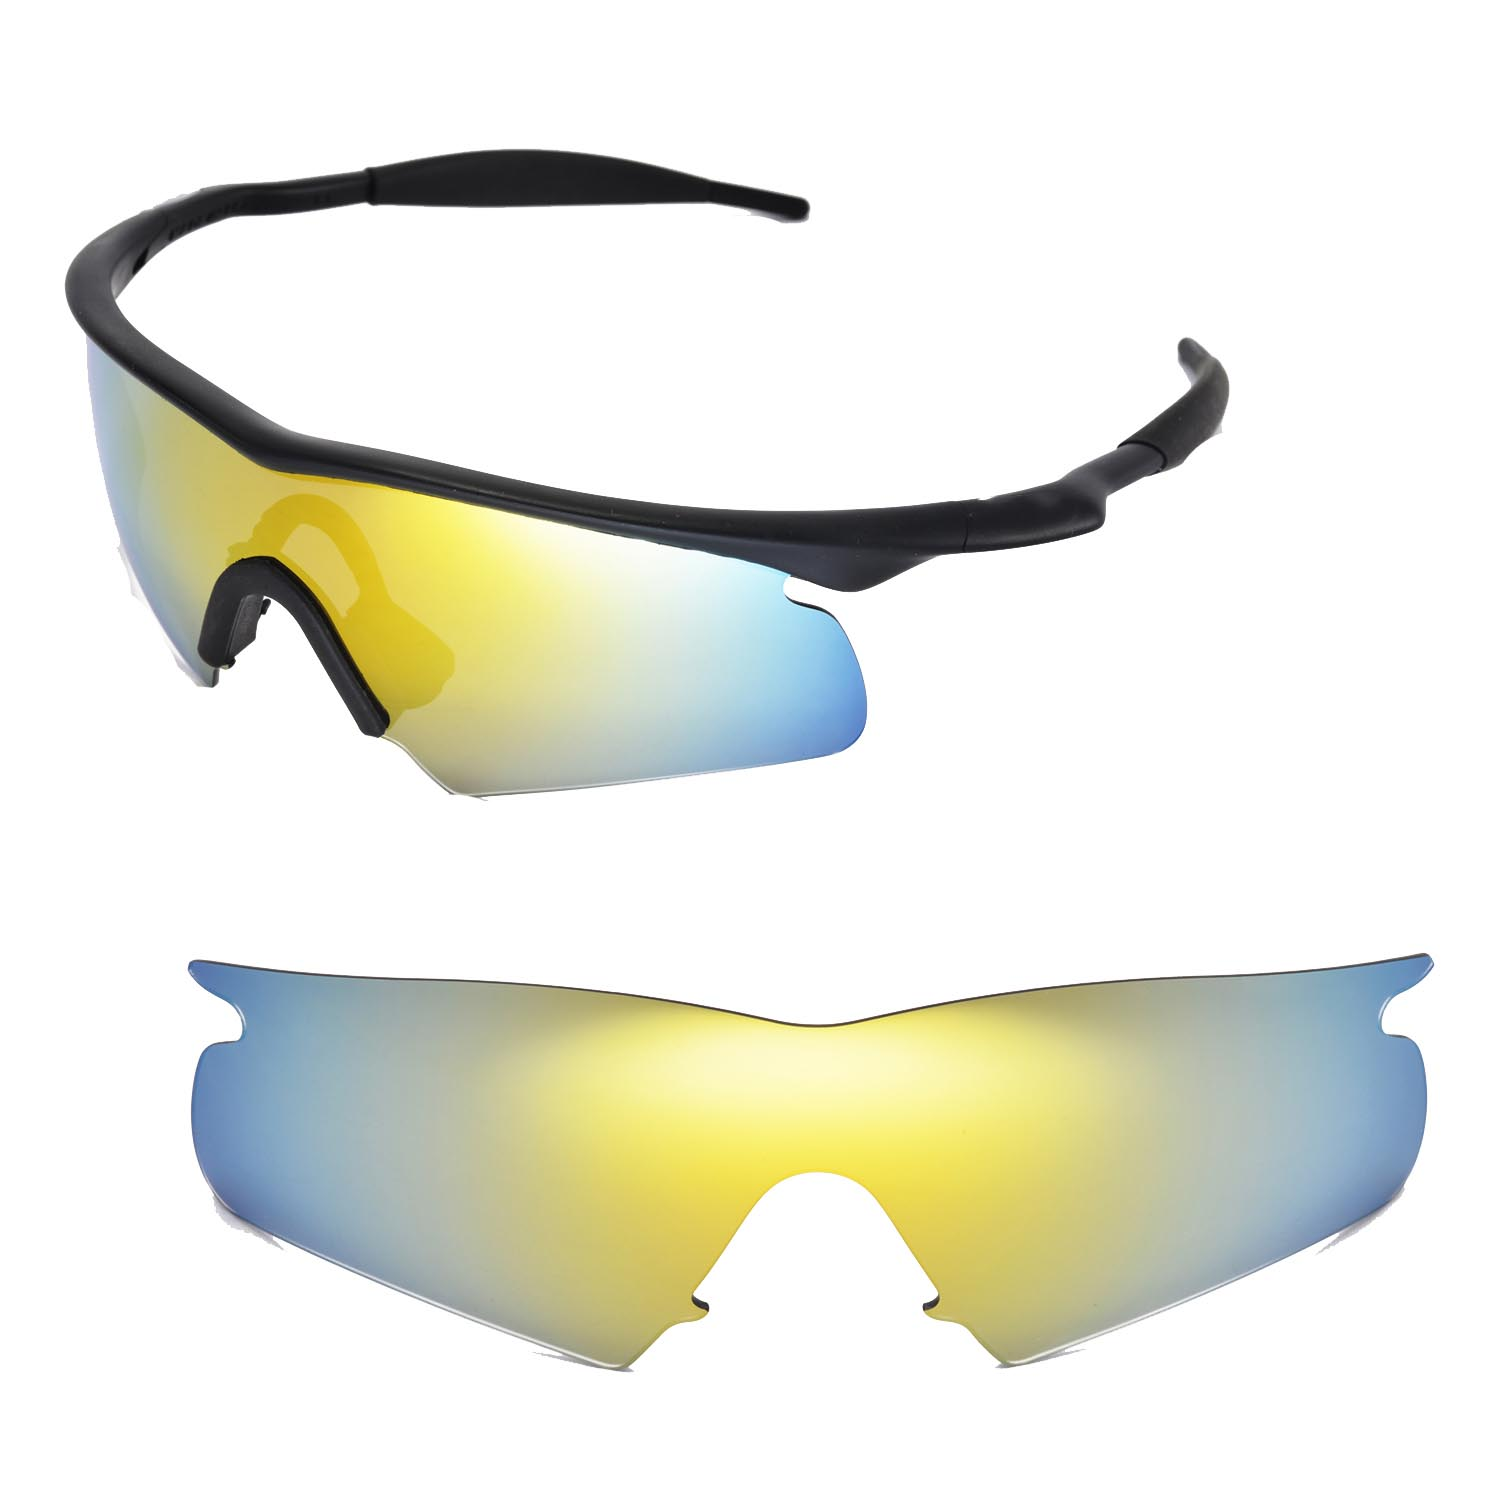 9f07c3d4b55 Details about New Walleva Polarized 24K Gold Replacement Lenses For Oakley  M Frame Hybrid